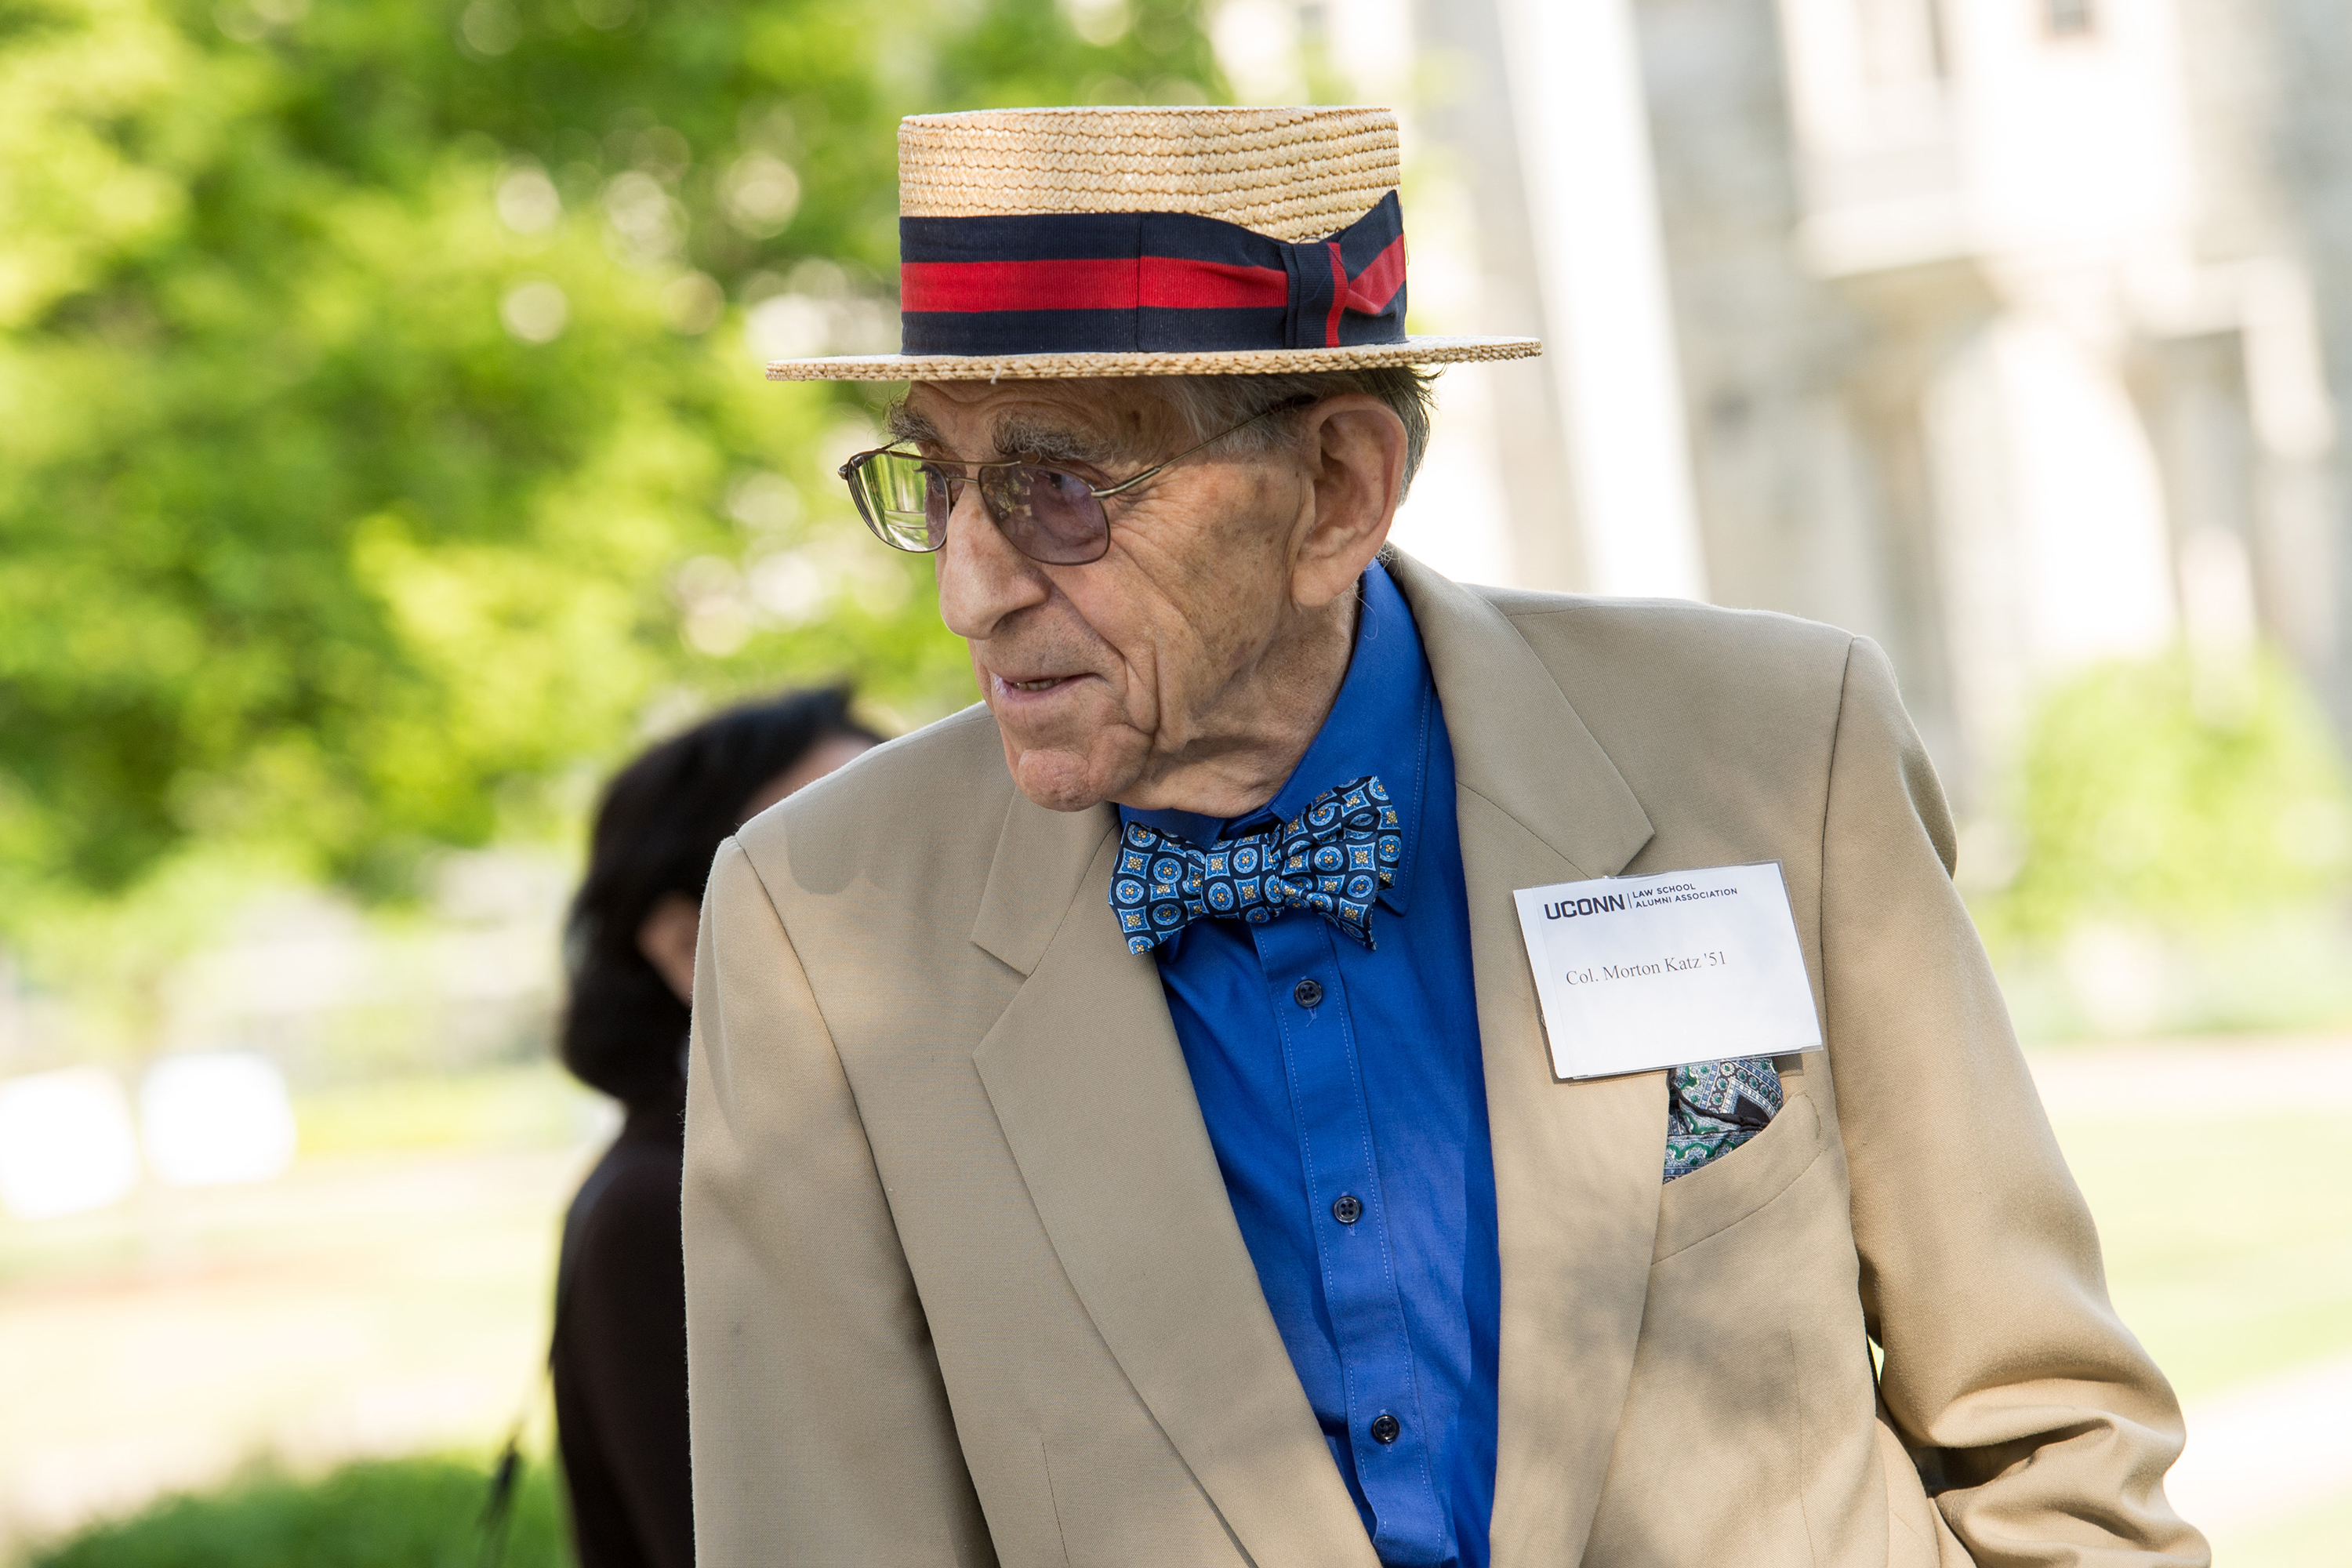 Morton Katz '51 attending a UConn School of Law reunion event in 2015. (Spencer A. Sloan for UConn)